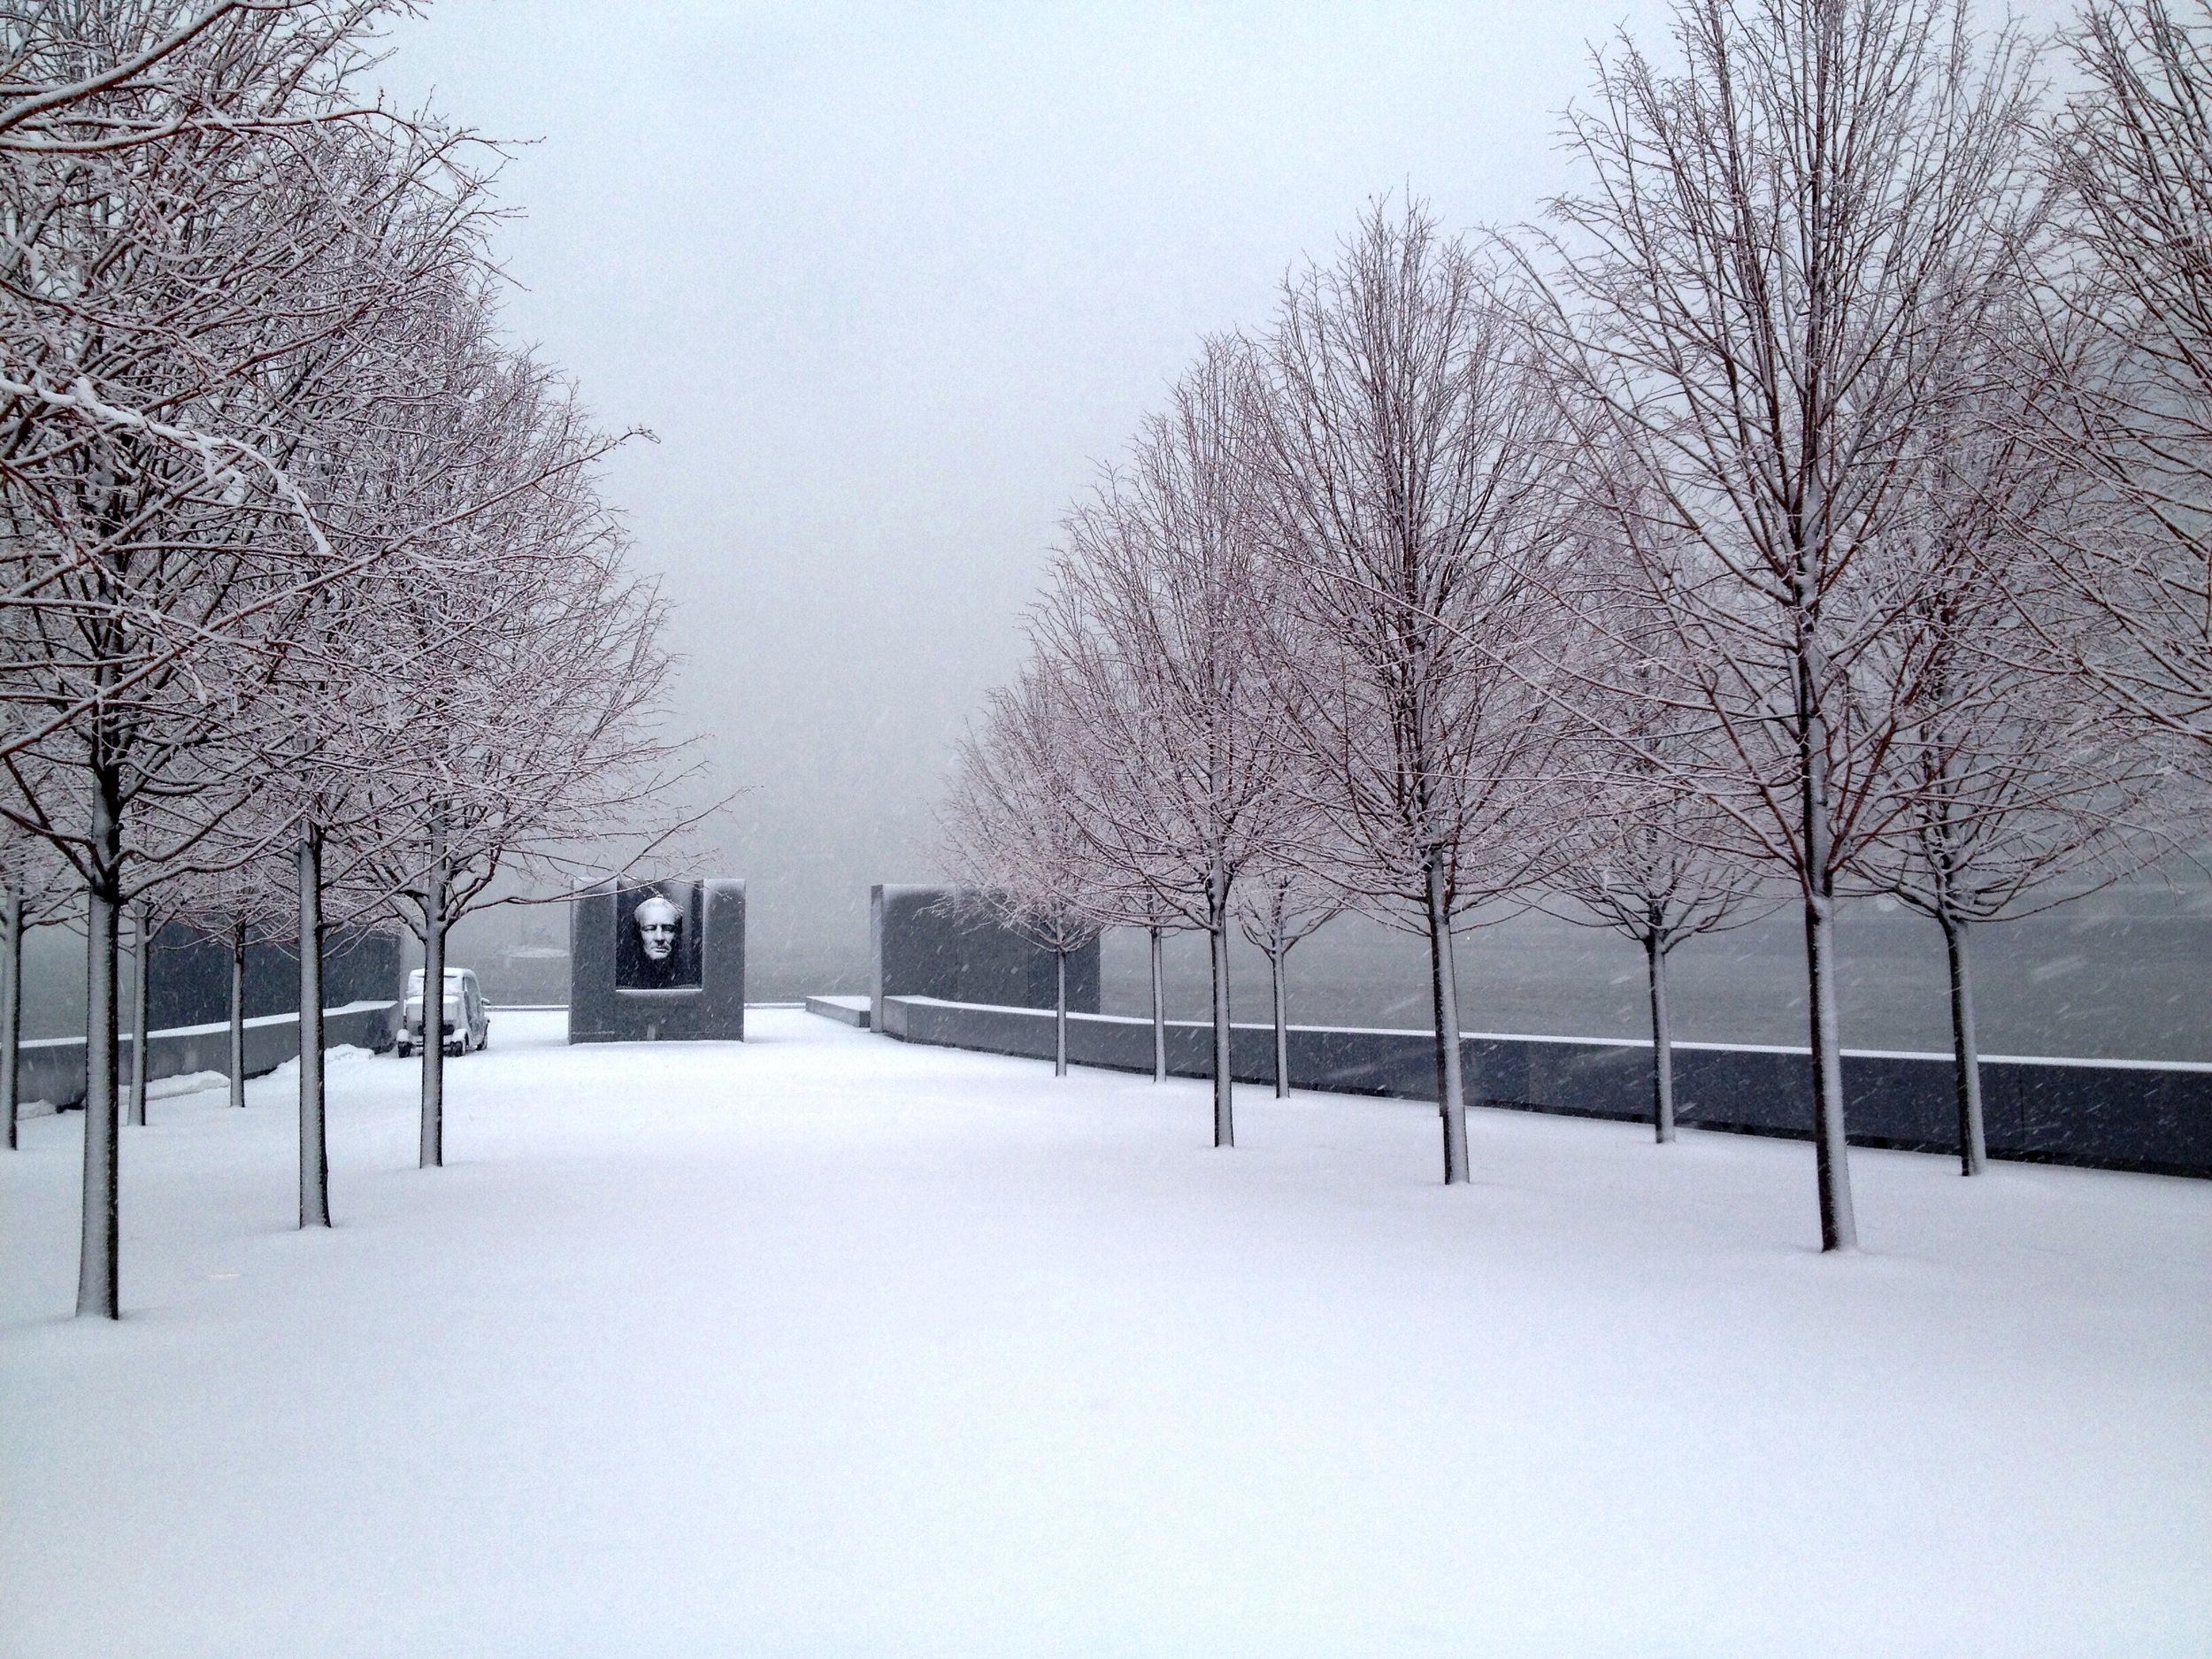 The Park on a snowy day this winter.